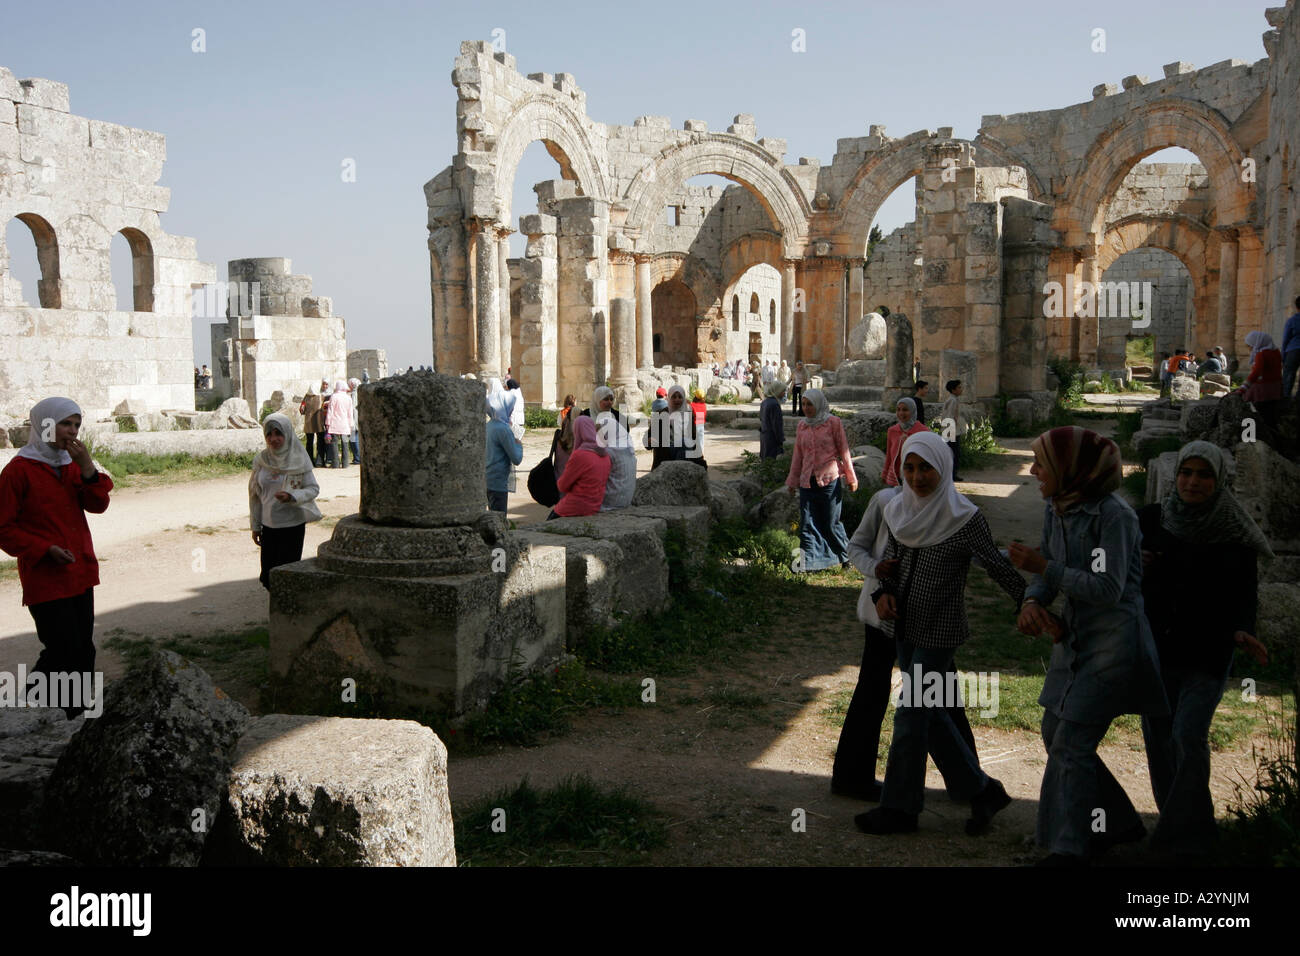 Crowd of Syrian tourists, Basilica of St Simeon, Qalaat Samaan, Syria, Middle East - Stock Image